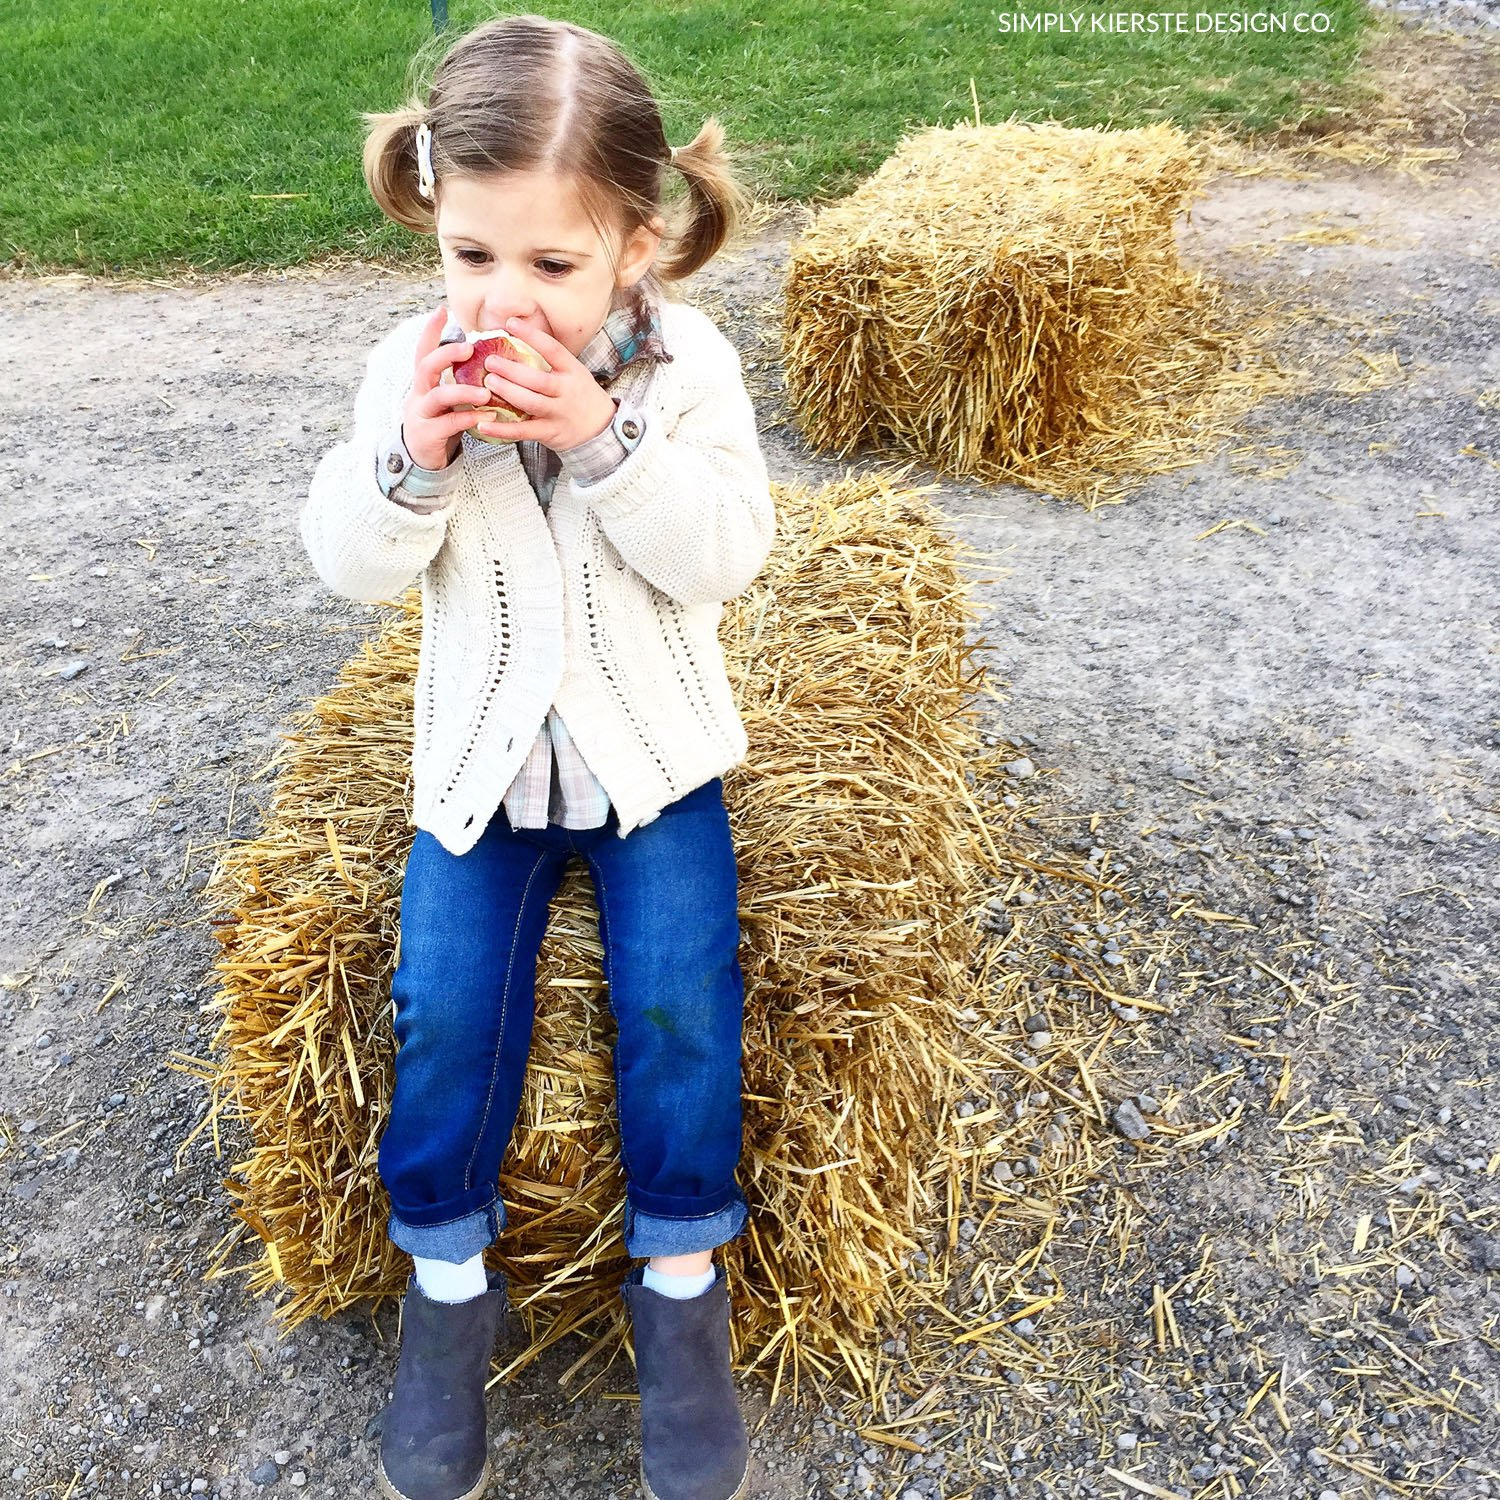 Apple Picking | Apple Farm | Fall Pumpkins | Fall Family Tradition | simplykierste.com